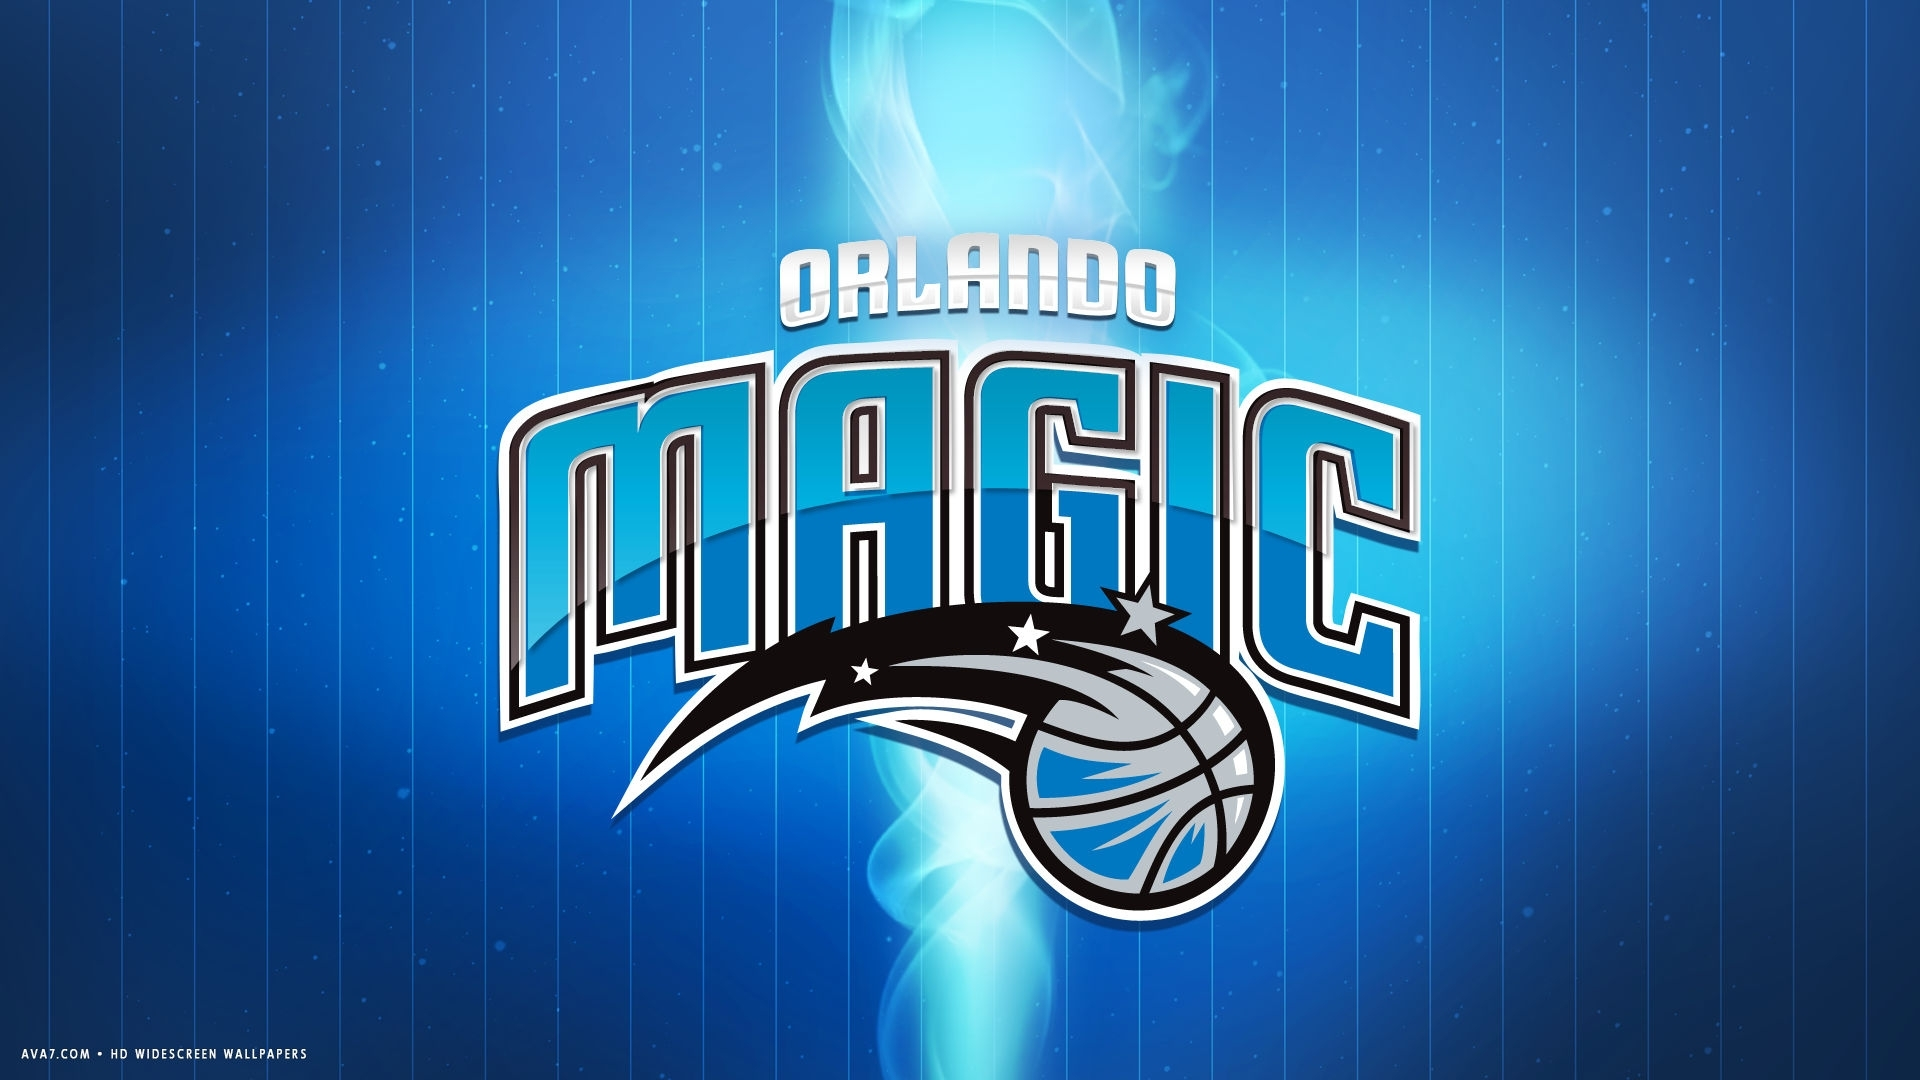 orlando magic nba basketball team hd widescreen wallpaper